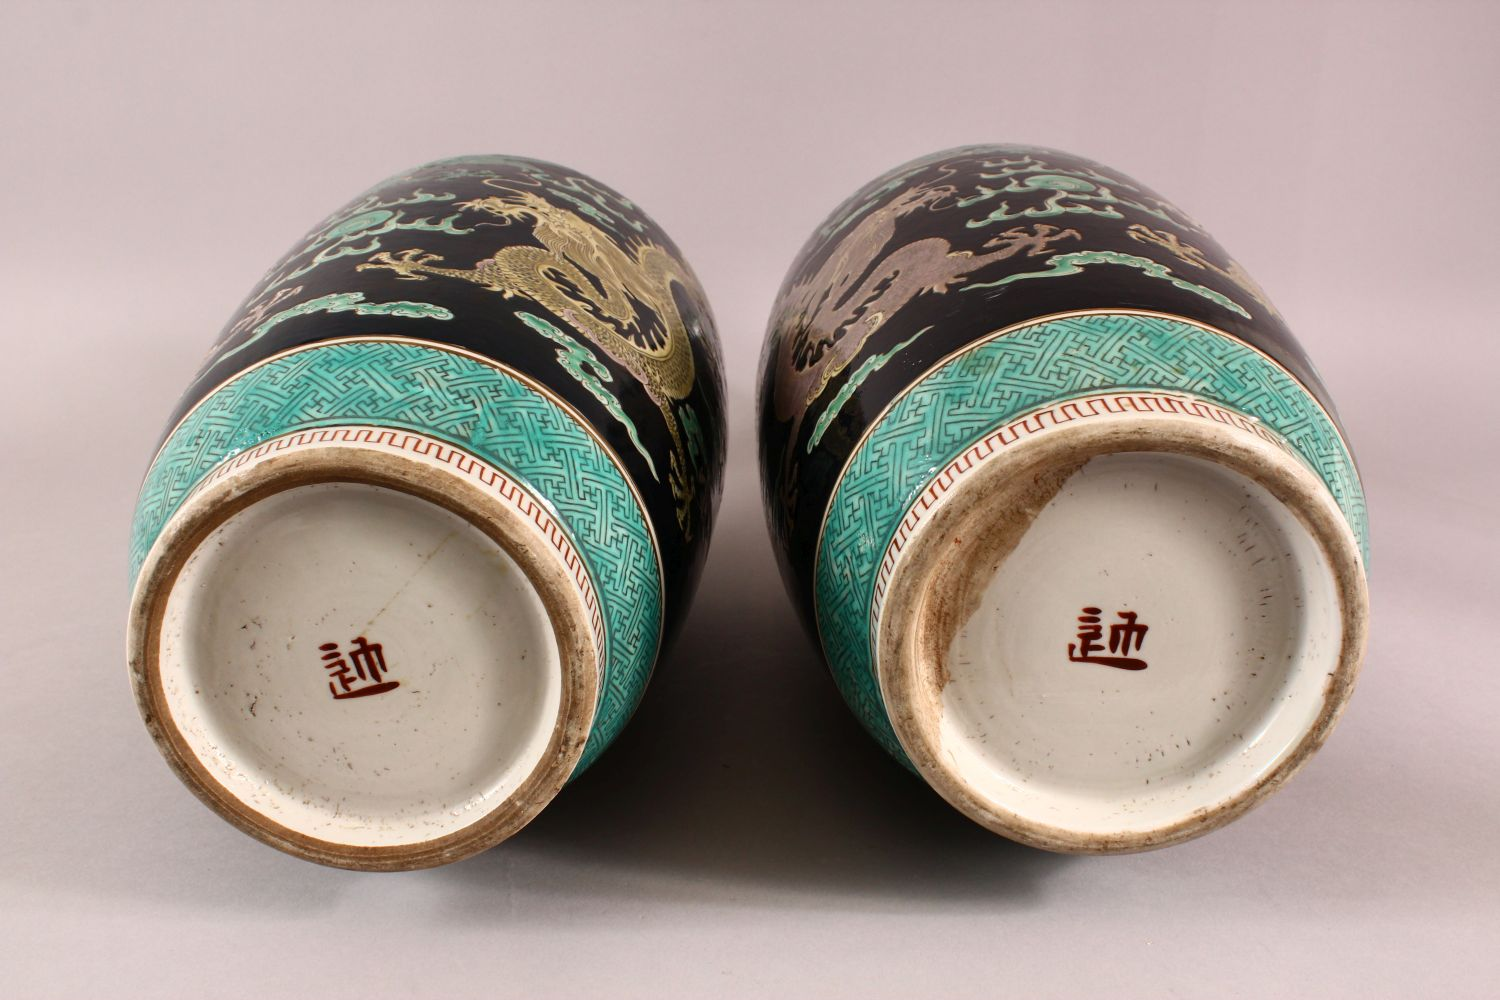 A LARGE PAIR OF CHINESE FAMILLE NOIR PORCELAIN DRAGON VASES, each vase with a black ground depicting - Image 11 of 13